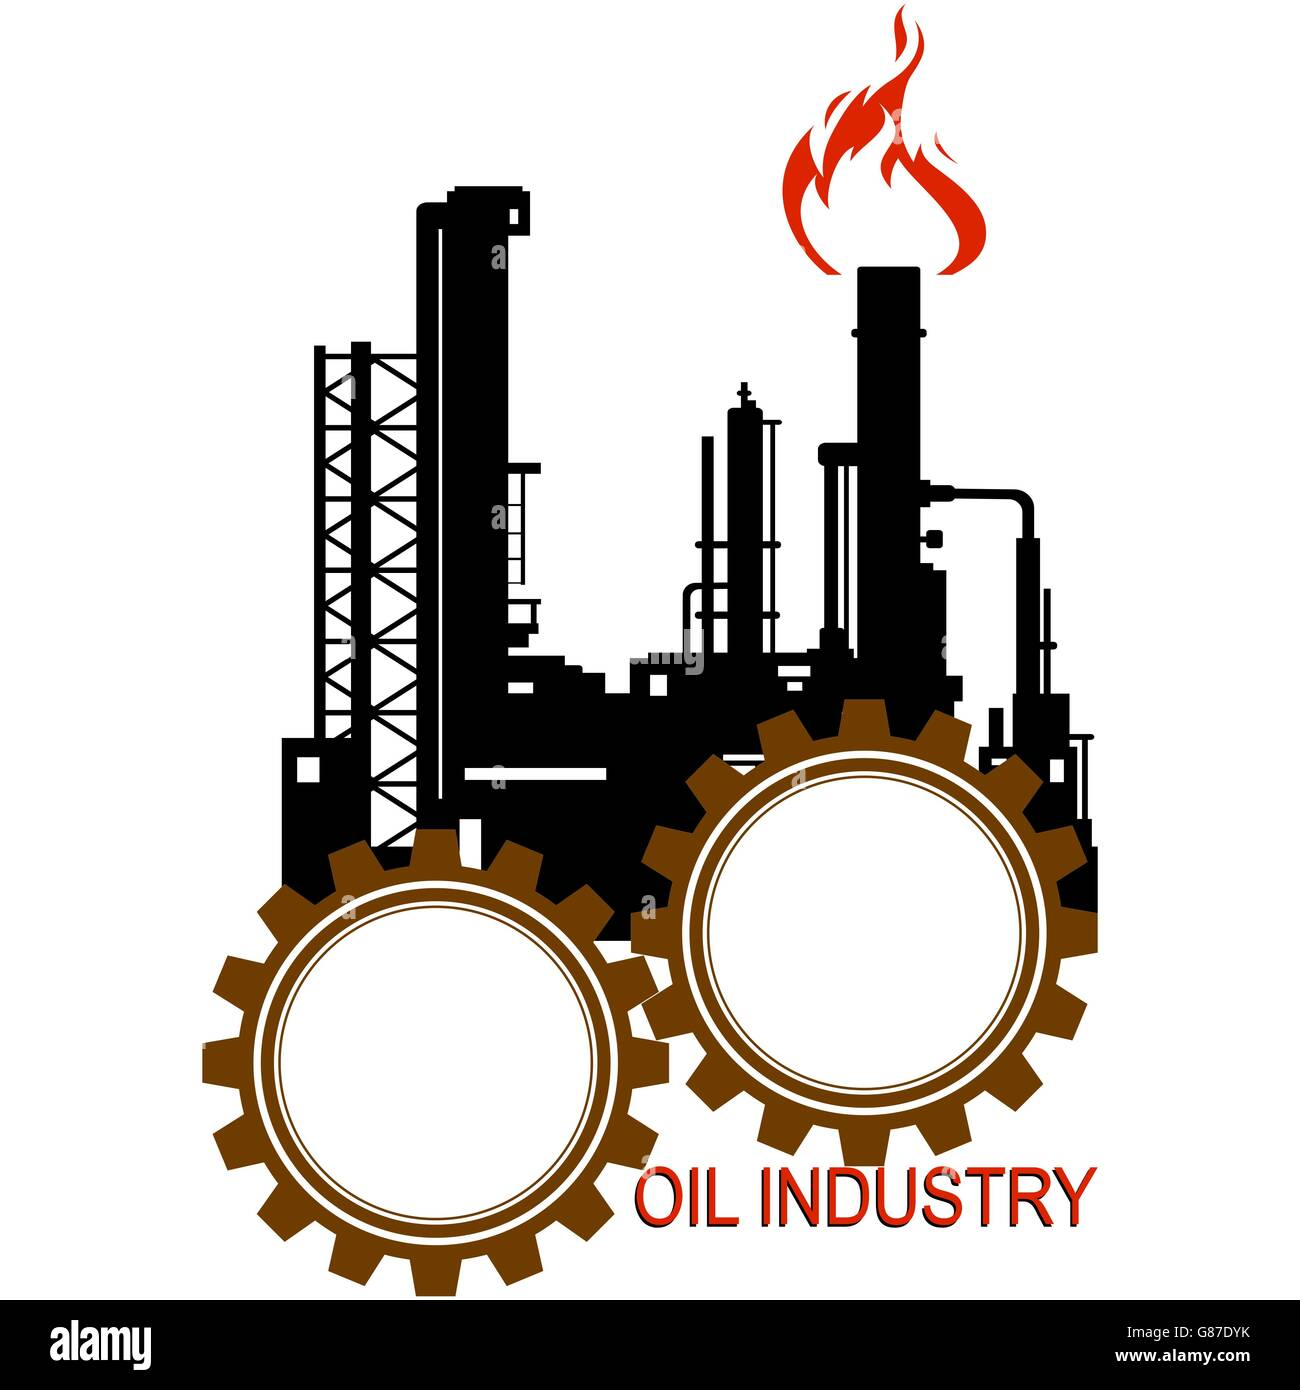 Oil Refinery Cut Out Stock Images Pictures Alamy Power Plant Diagram Circuit The Illustration On A White Background Image